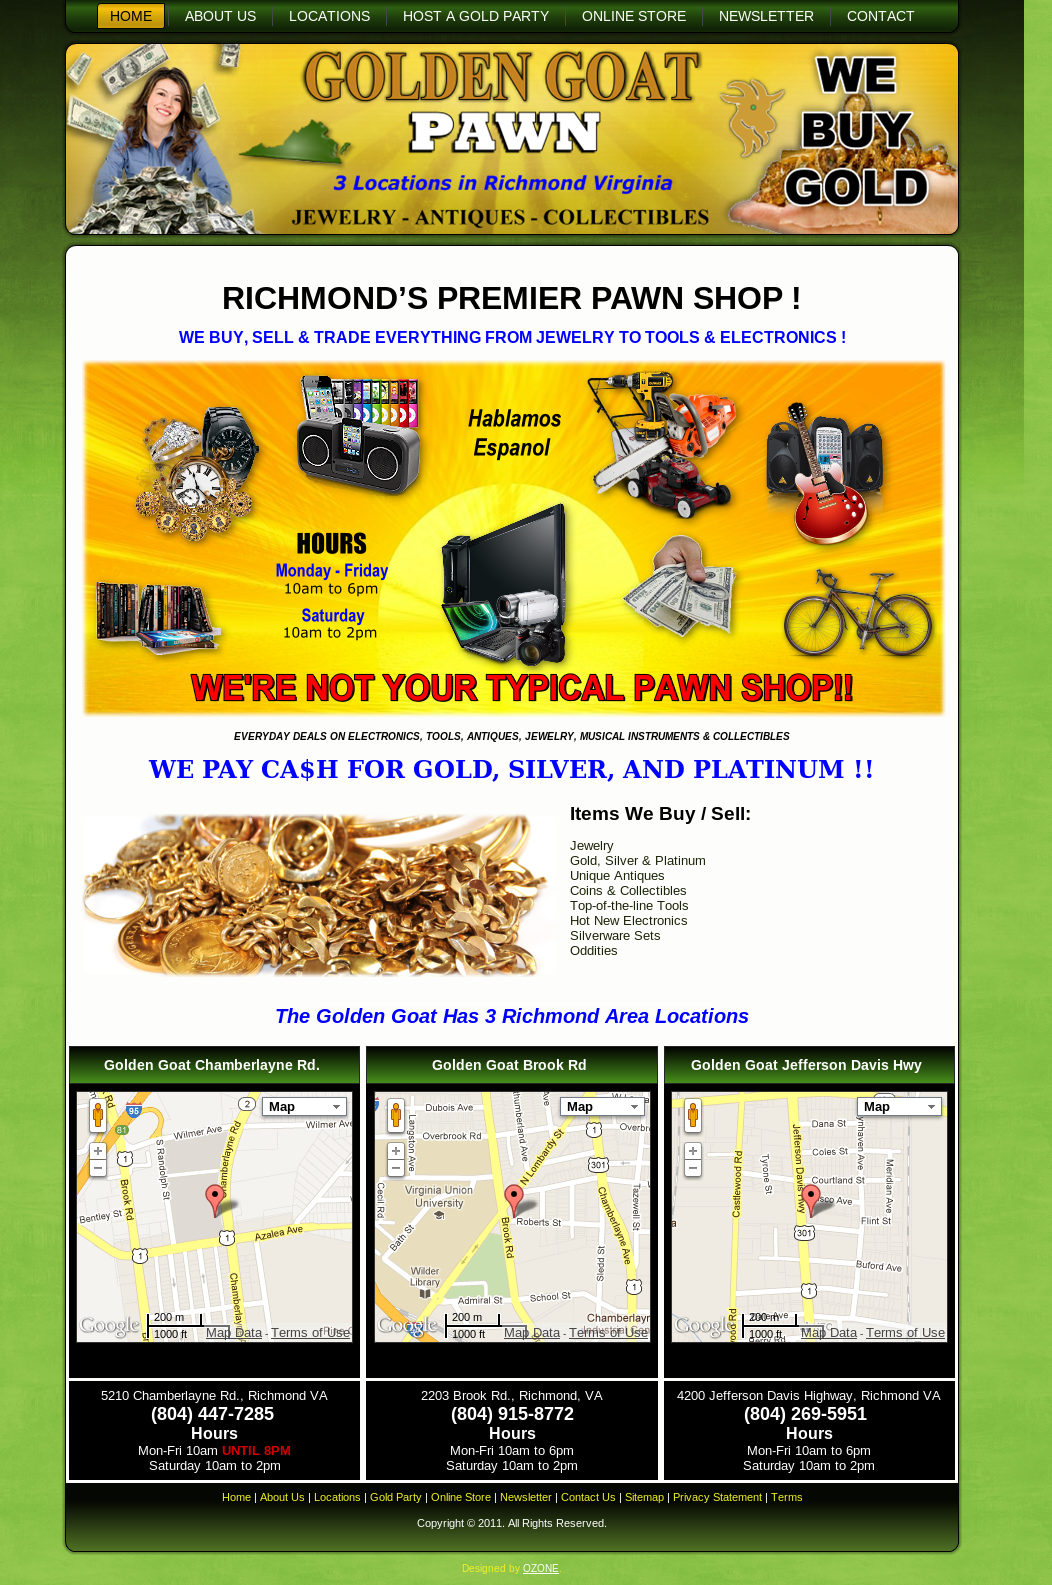 Golden Goat Pawn Shop Web Design Richmond Virginia